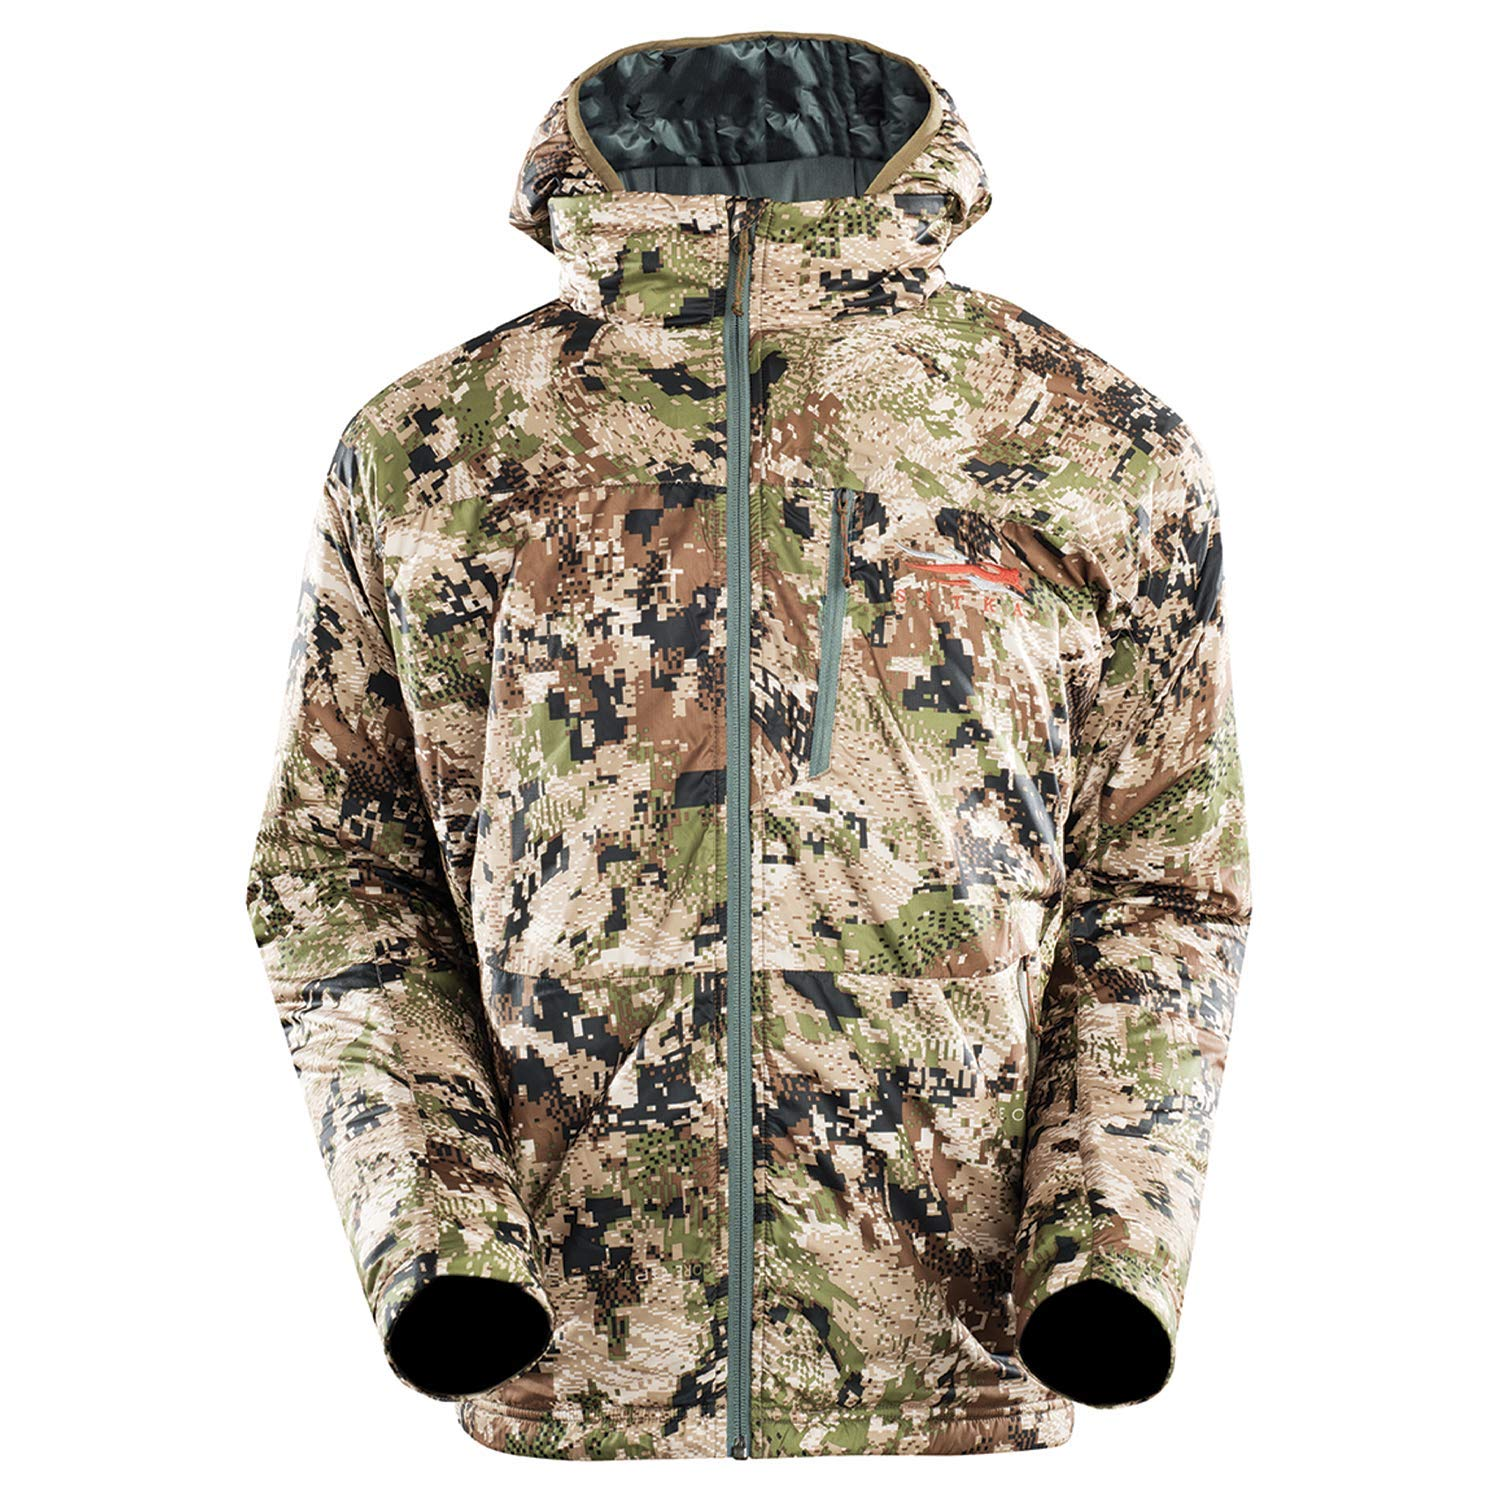 SITKA Gear New for 2019 Youth Rankine Hoody Optifade Subalpine Youth Large by SITKA